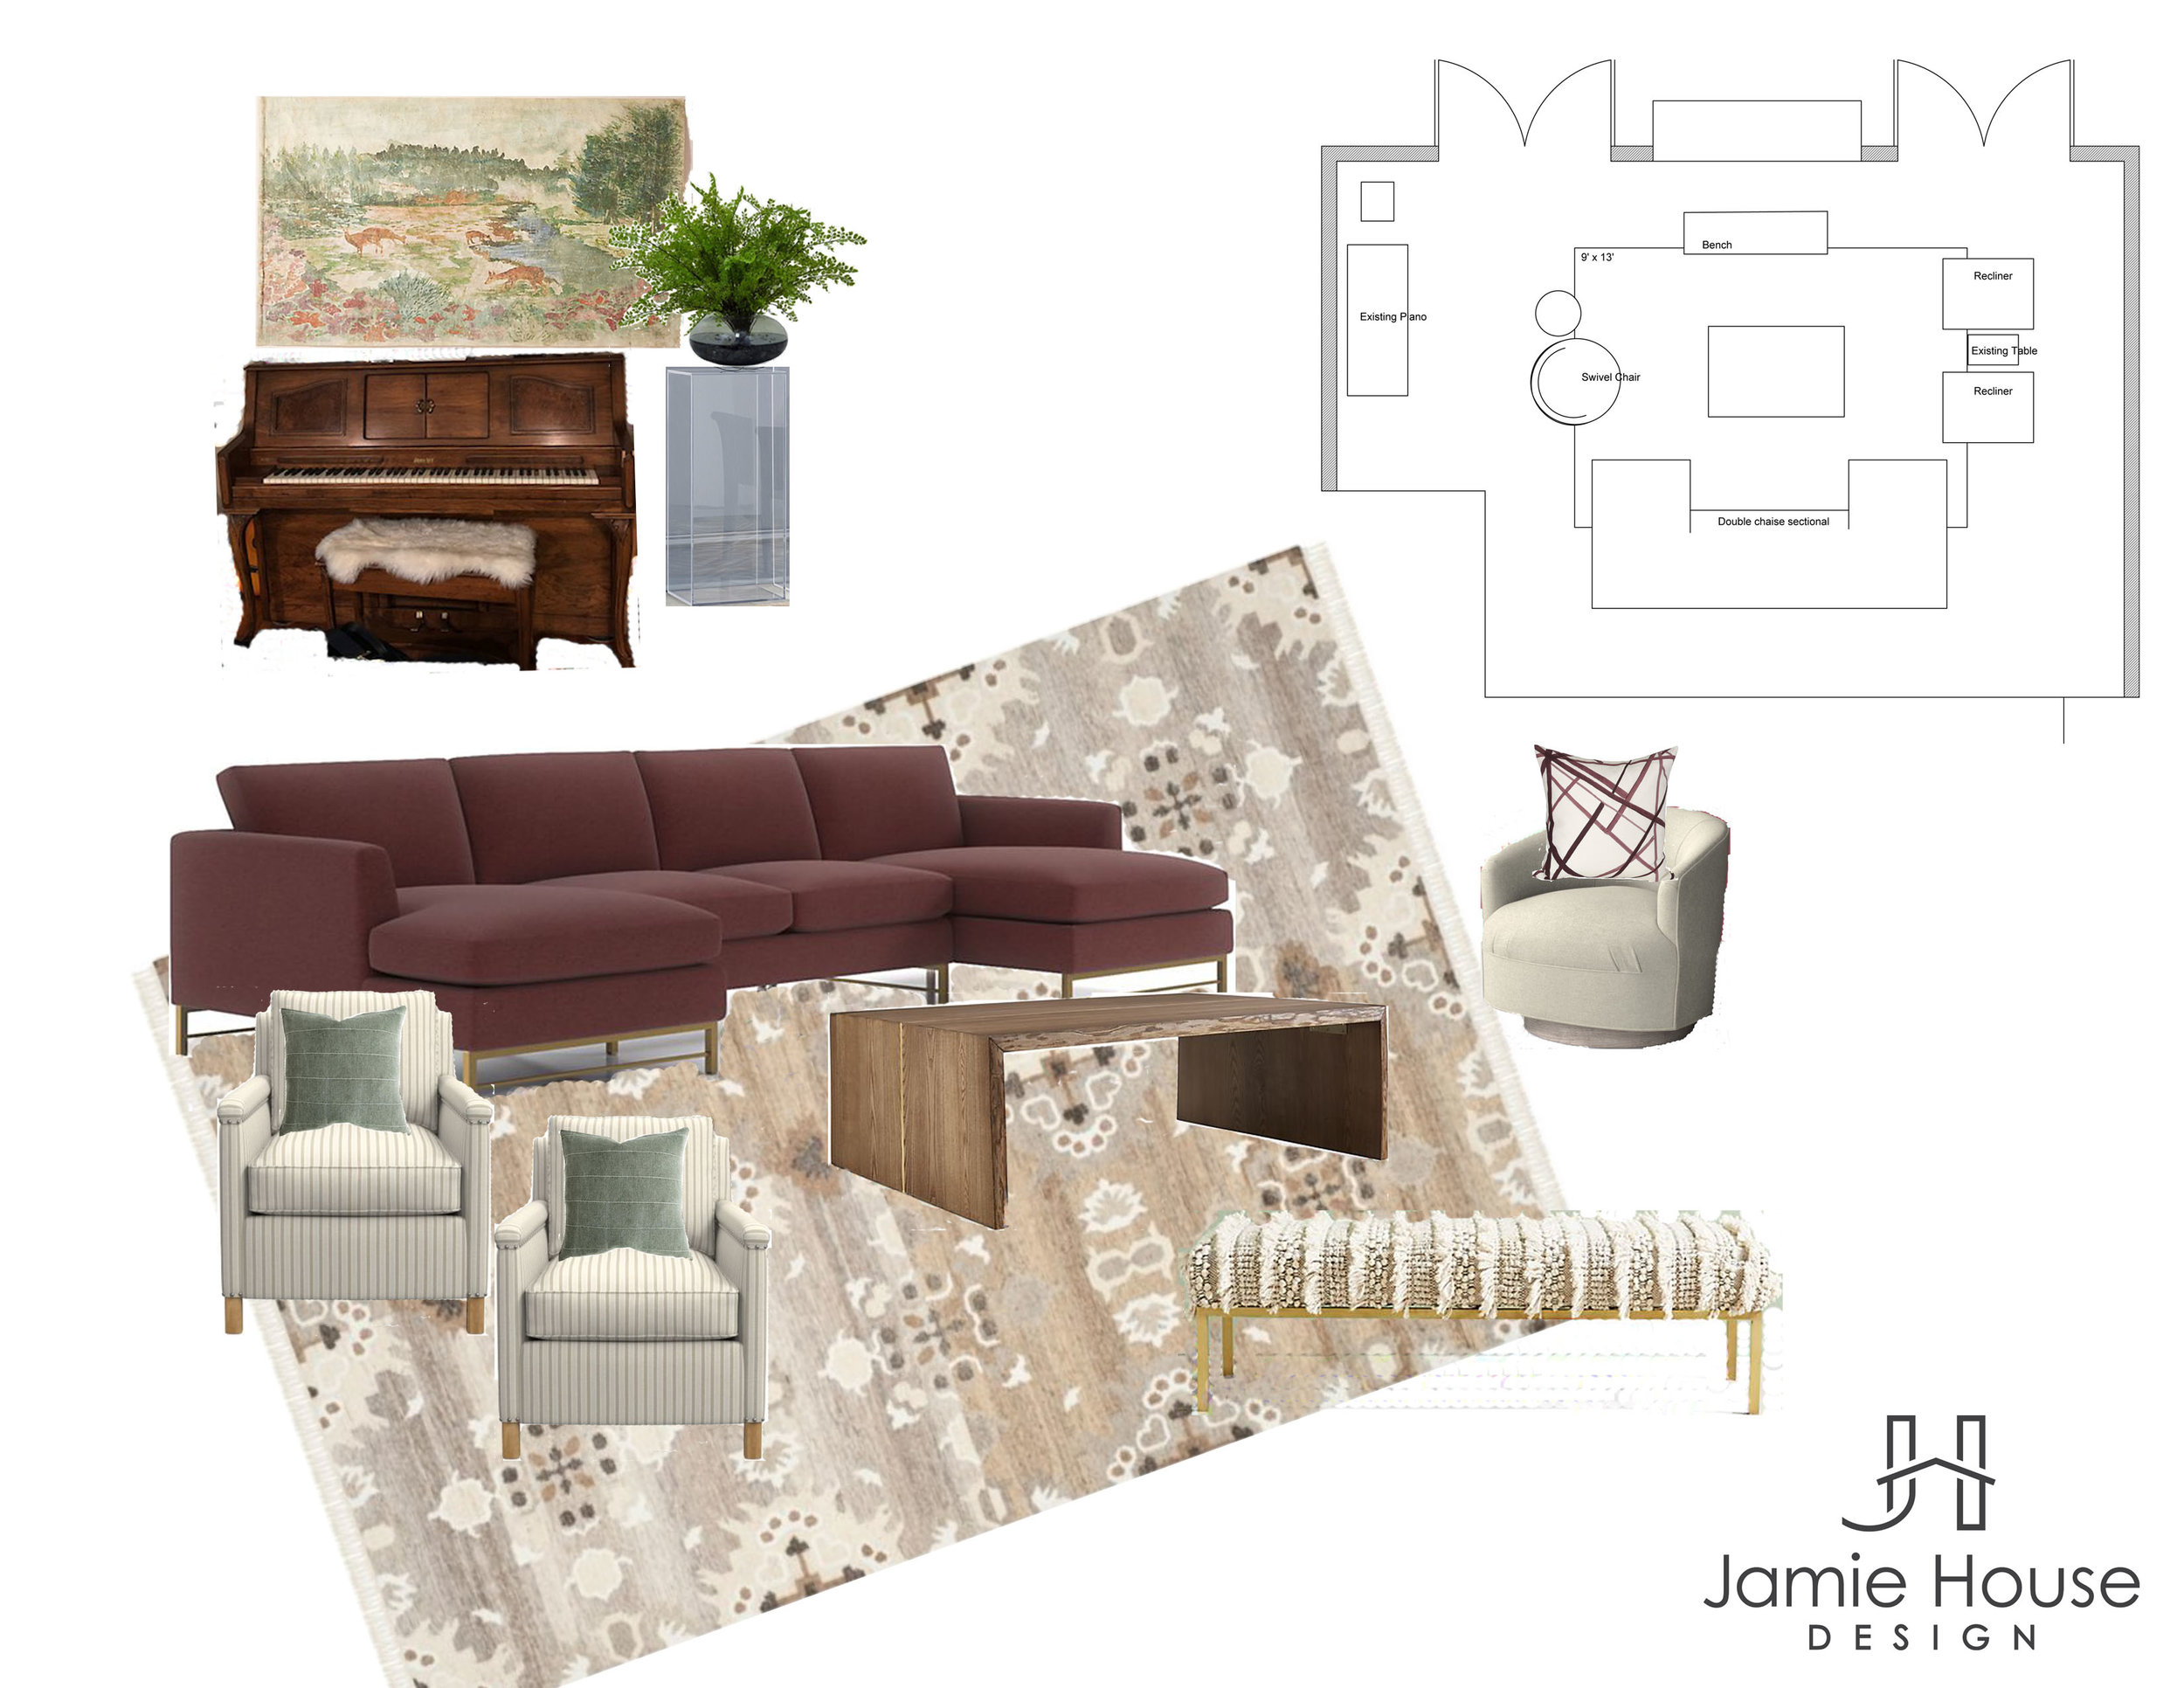 Designing from a distance living room moodboard by Jamie House Design